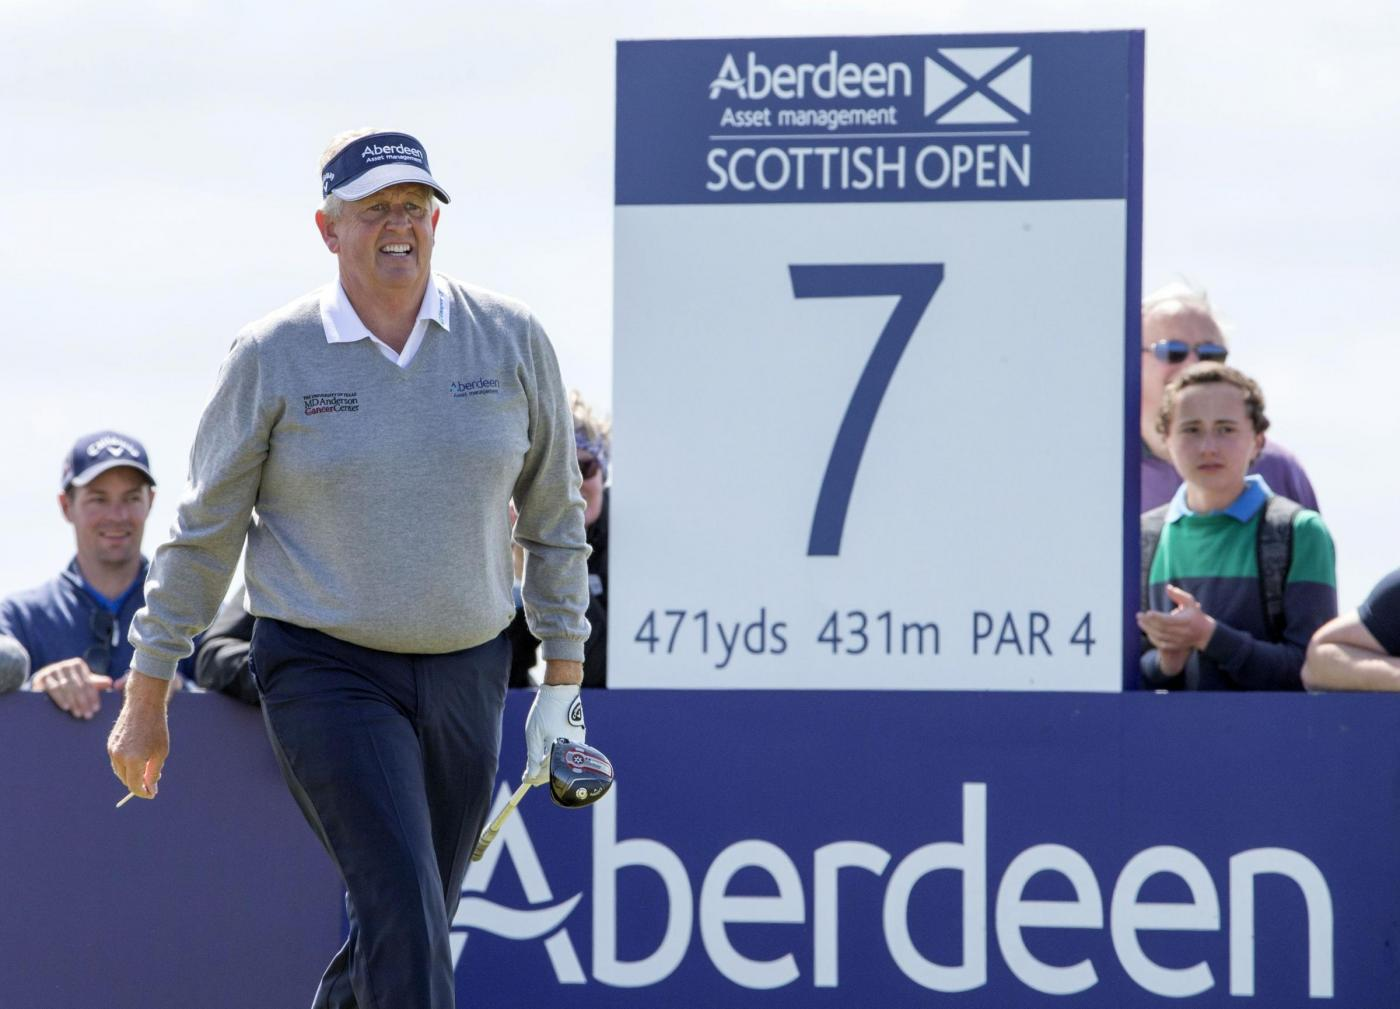 Scotland's Colin Montgomery walks off  the 7th hole during day one of the Scottish Open at Gullane Golf Club, East Lothian. PRESS ASSOCIATION Photo. Picture date: Thursday July 9, 2015. See PA story GOLF Gullane. Photo credit should read: Kenny Smith/PA Wire. RESTRICTIONS: Editorial use only. No commercial use. No false commercial association. No video emulation. No manipulation of images.